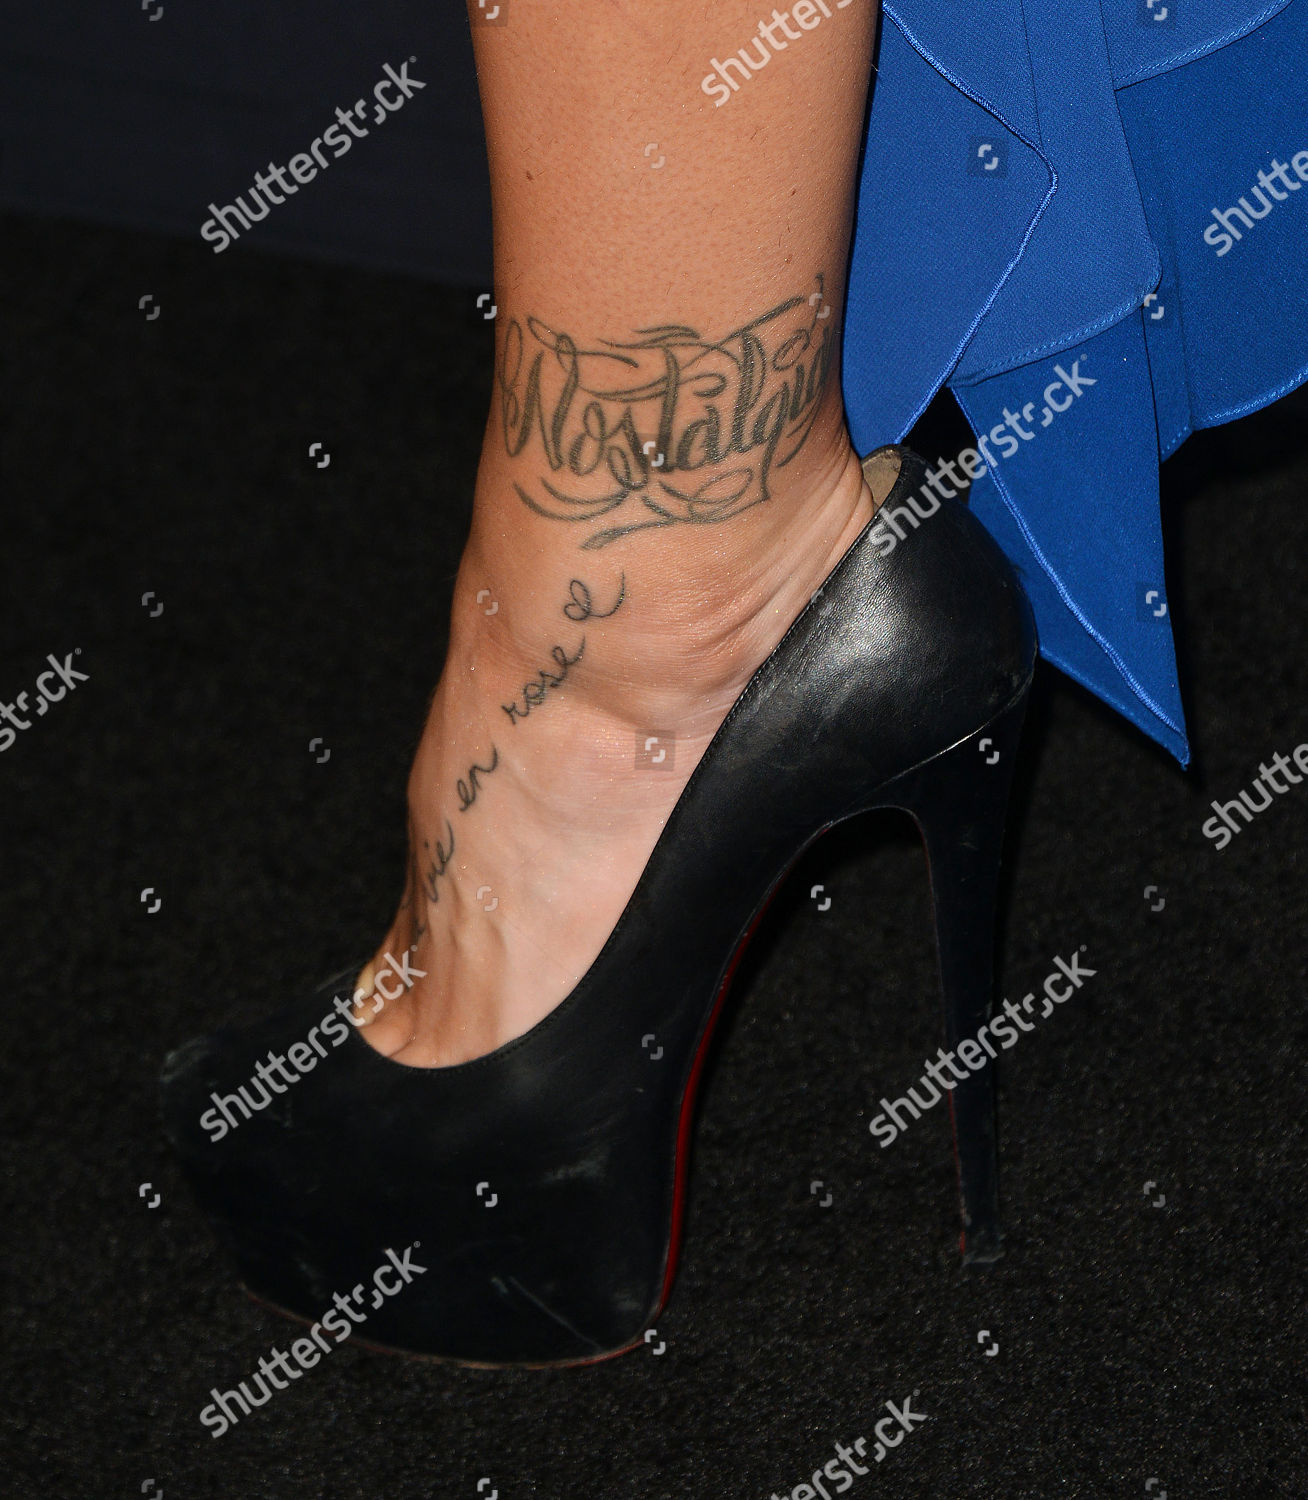 e14131e7e3 Gigi Gorgeous Tattoo Detail Editorial Stock Photo - Stock Image ...